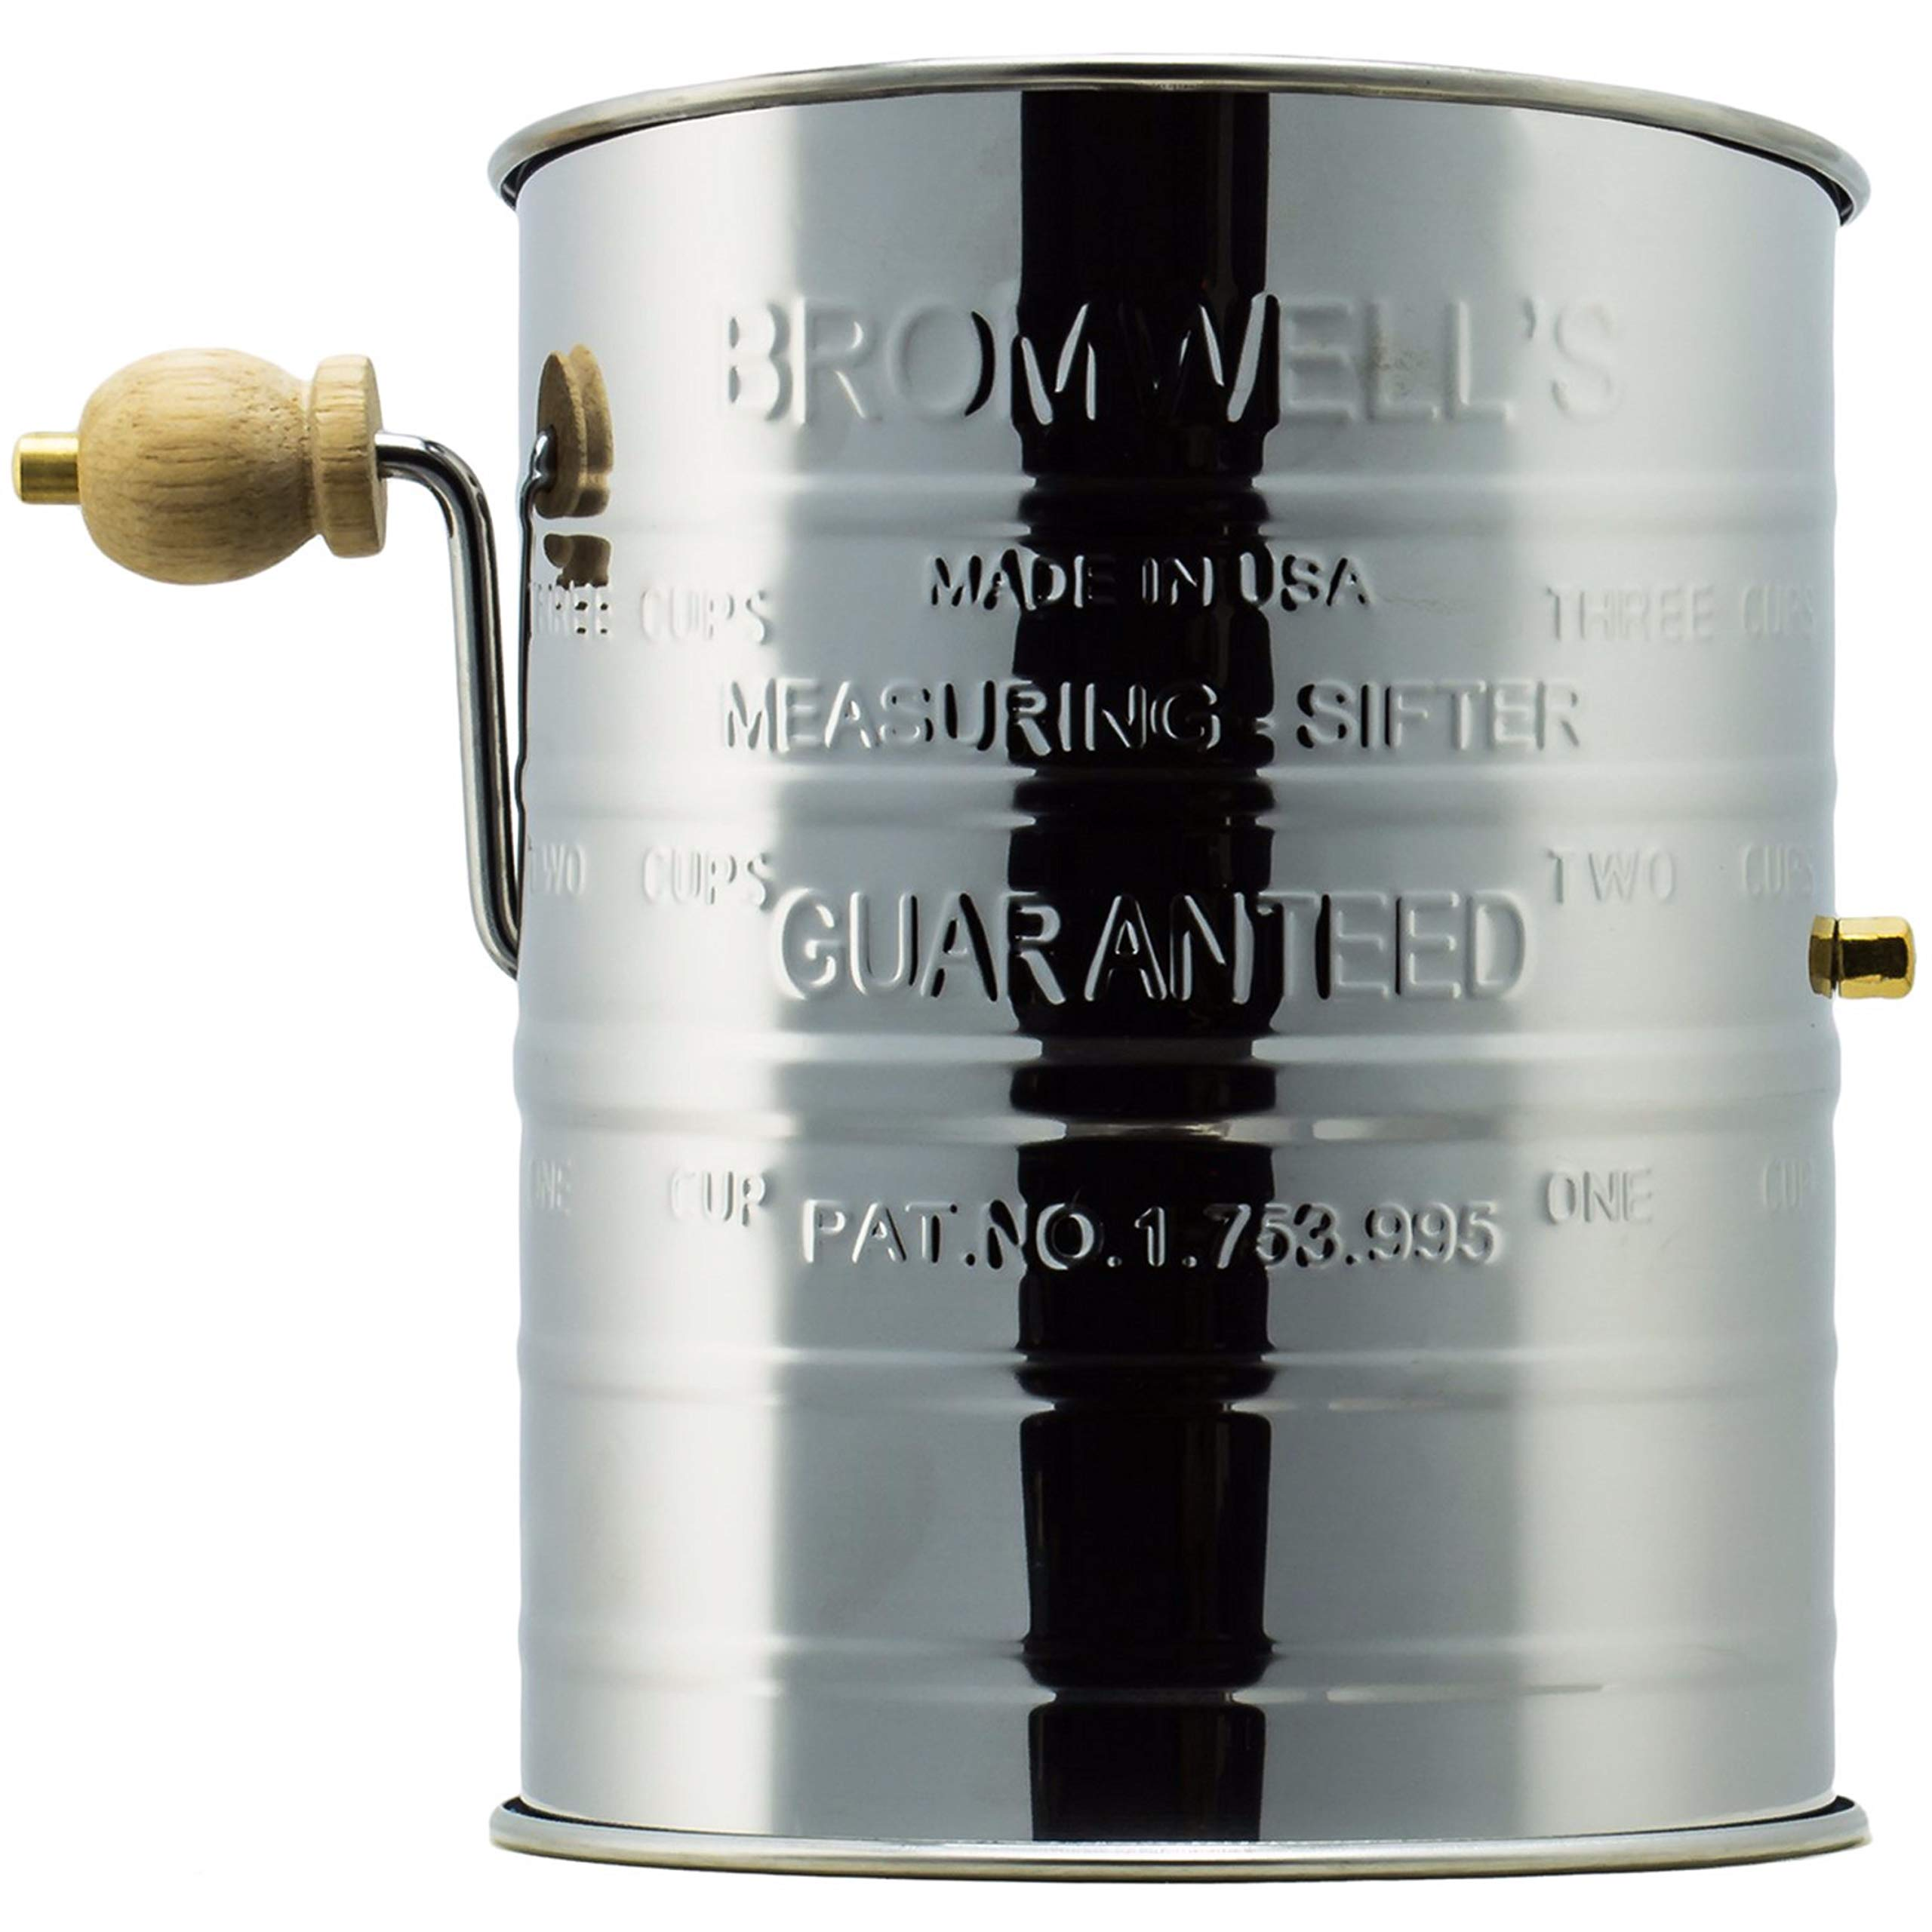 Jacob Bromwell Legendary Flour Sifter (3-Cup), Stainless Steel Crank Sifter, Made in USA